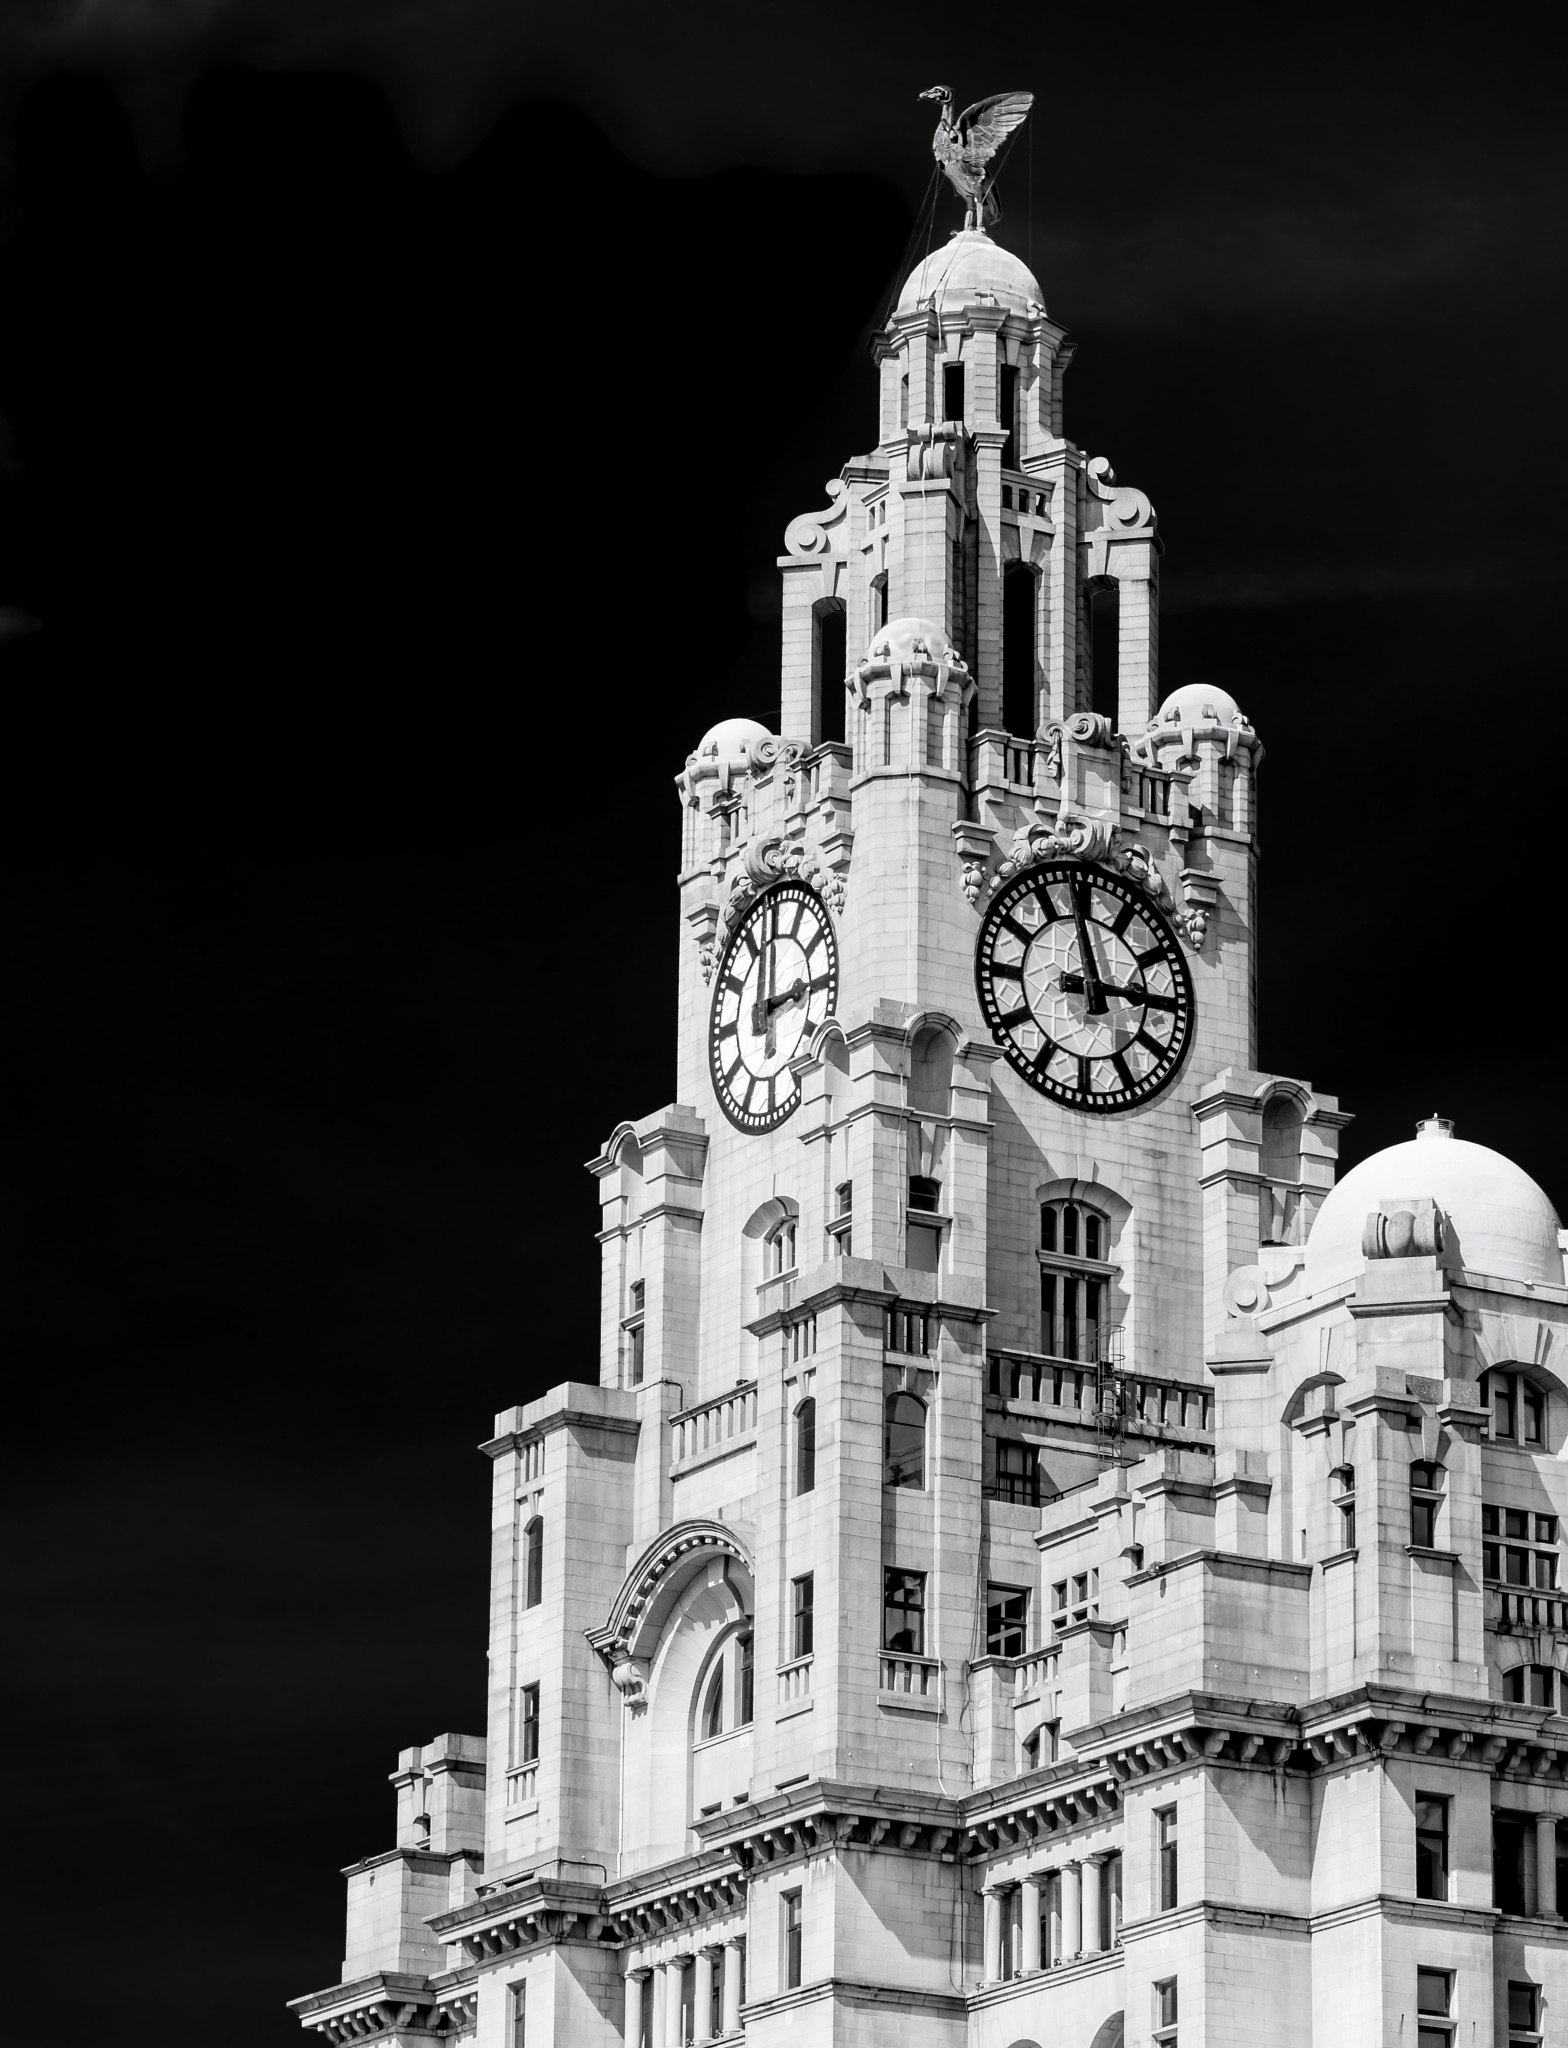 Liver Building by Vincent Malcolm